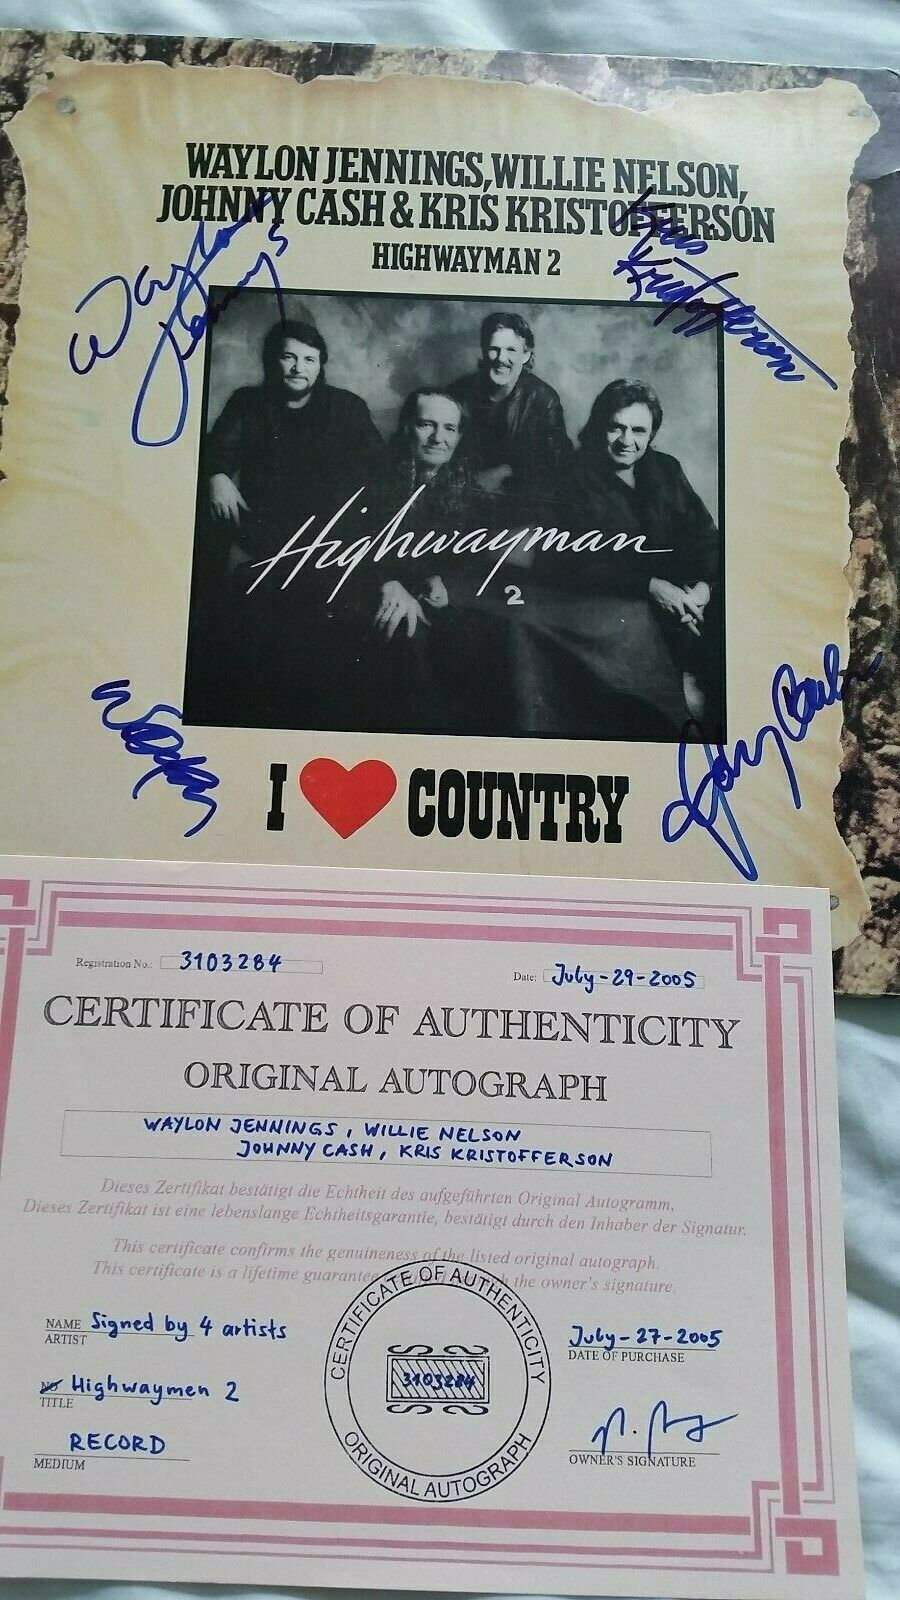 HIGHWAYMAN 2 LP - CASH, KRISTOFFERSON, NELSON, JENNINGS - SIGNED BY ALL 4